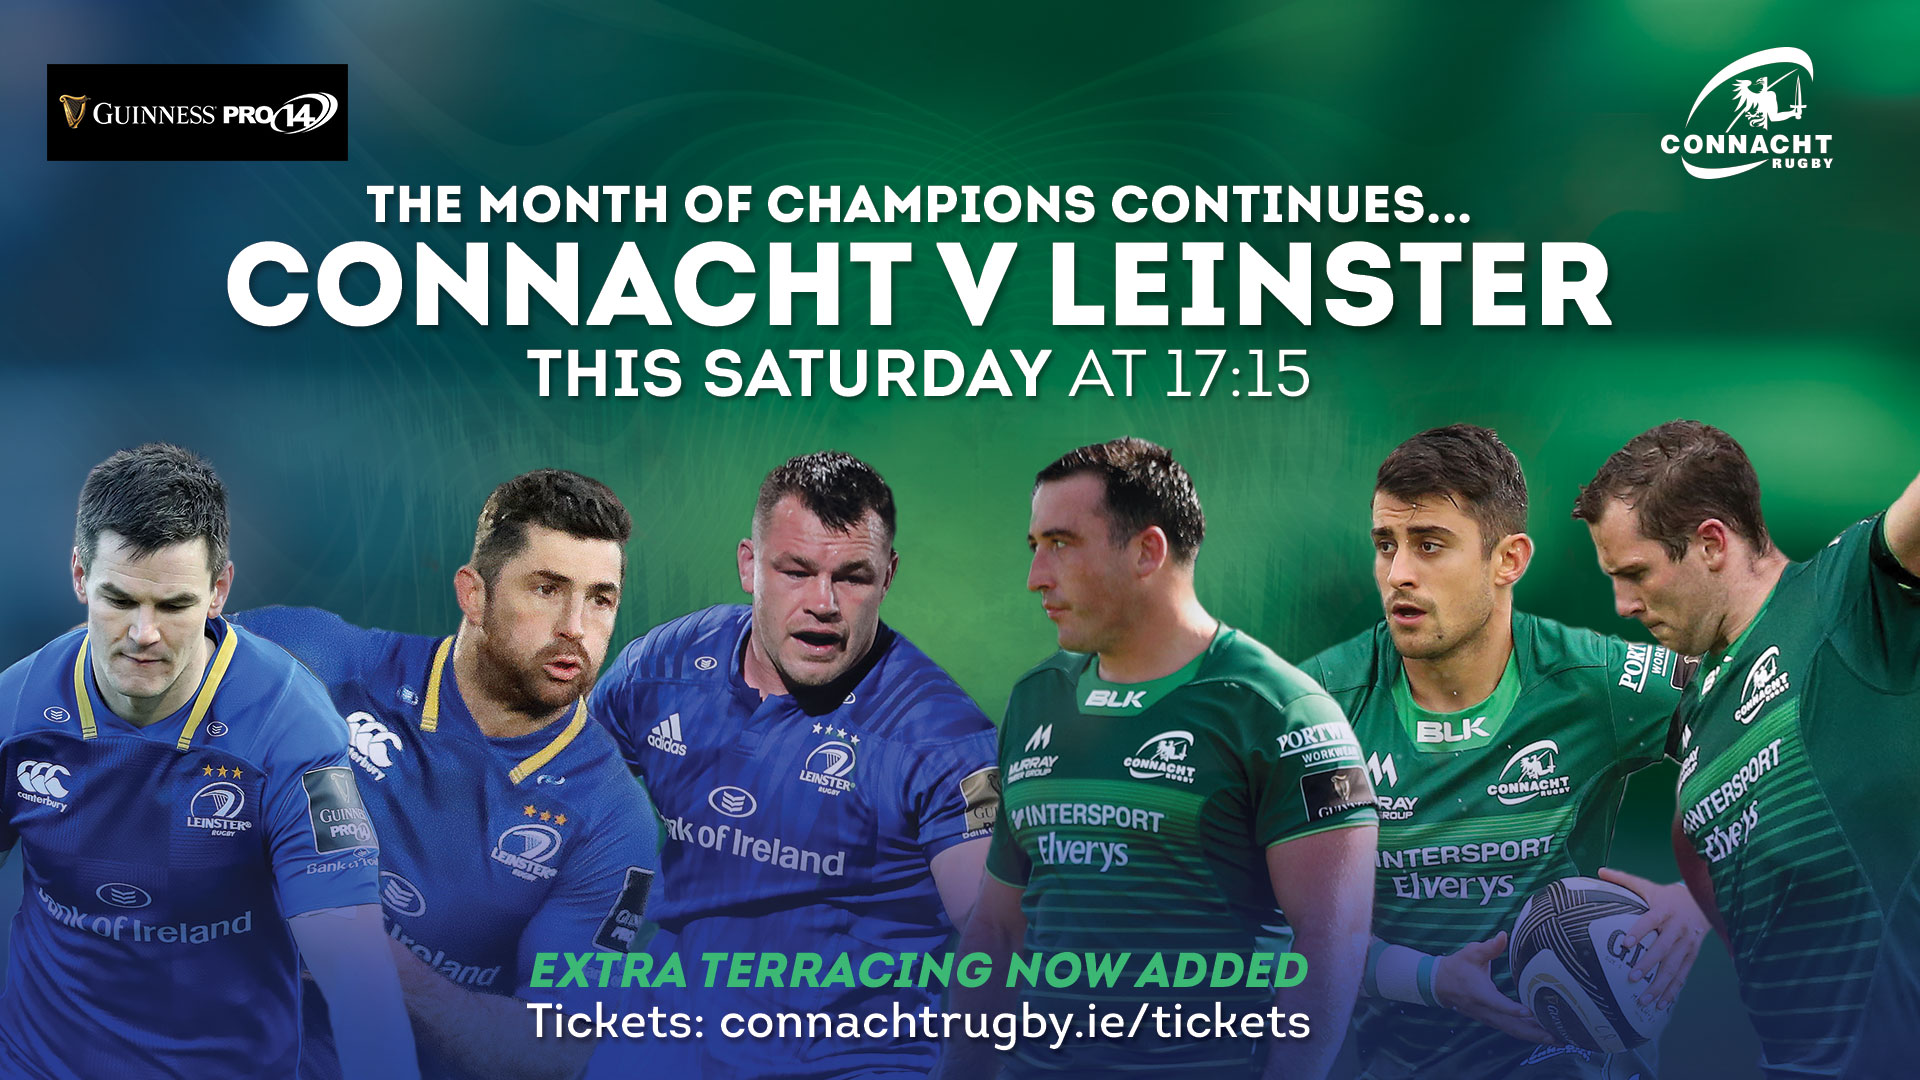 Connacht v Leinster